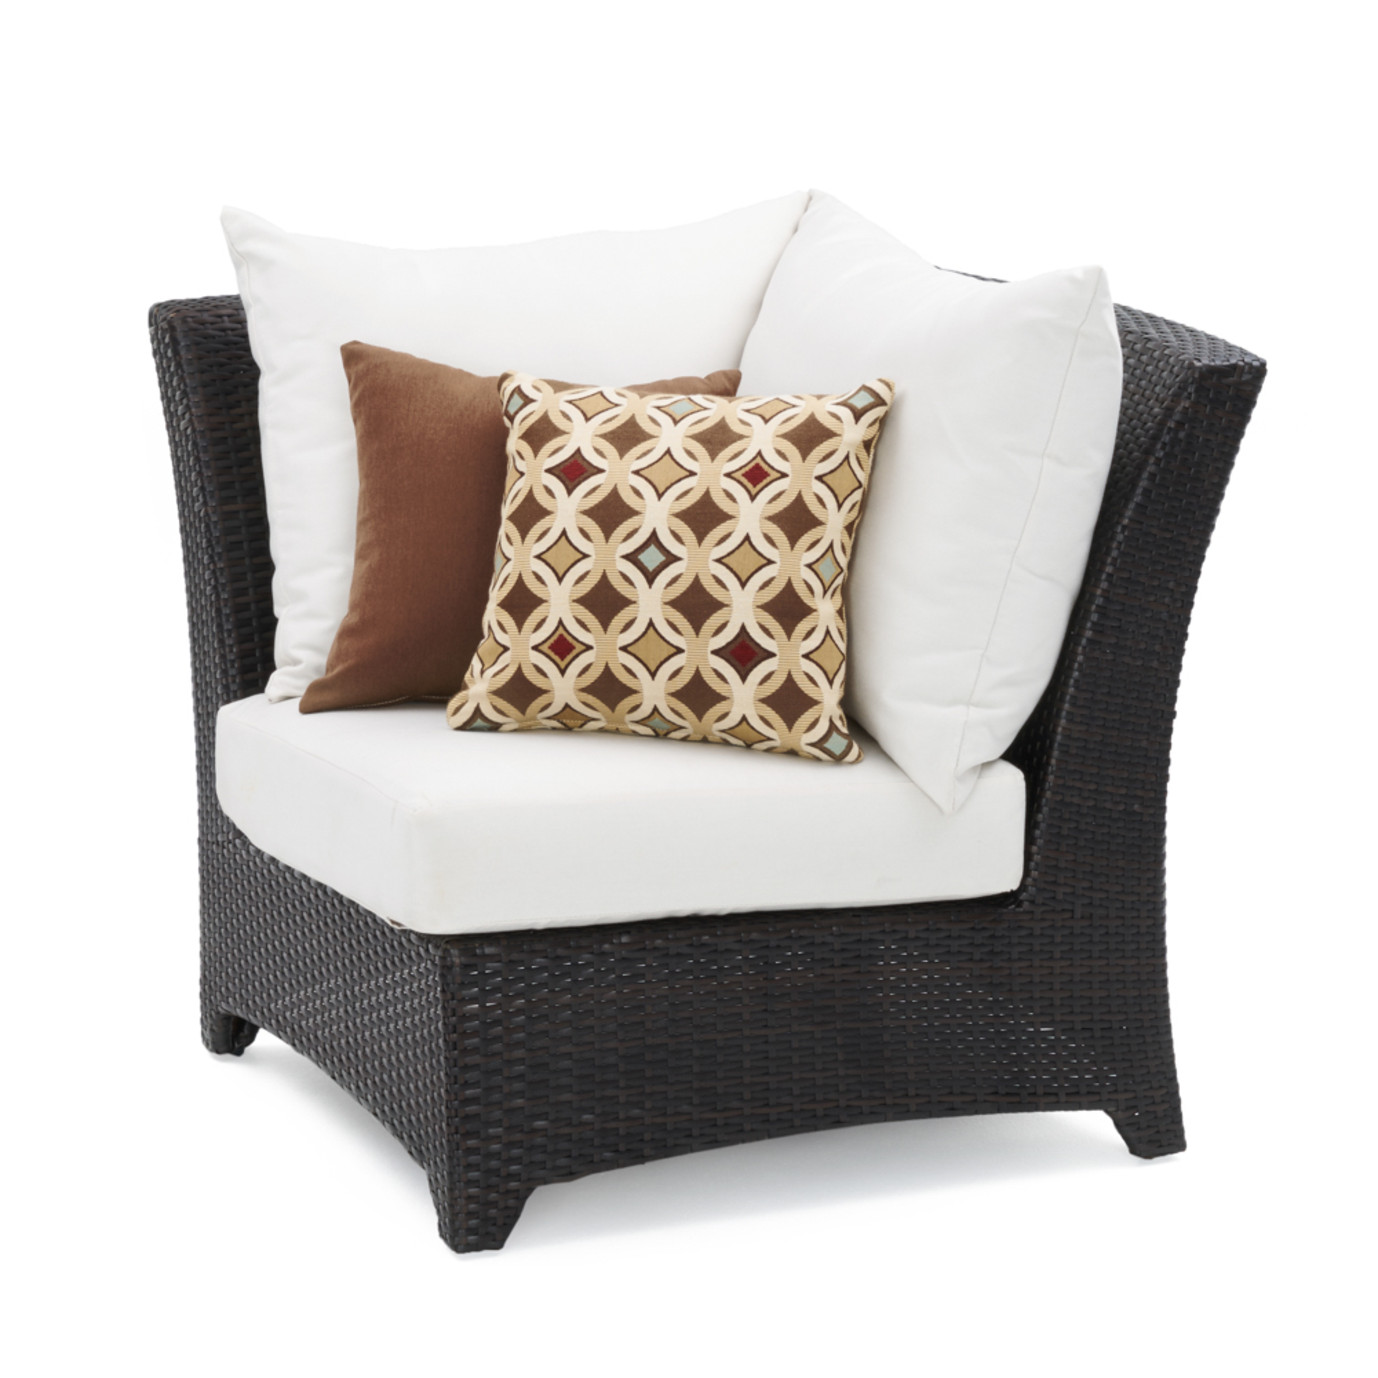 Deco™ Corner Chair - Moroccan Cream